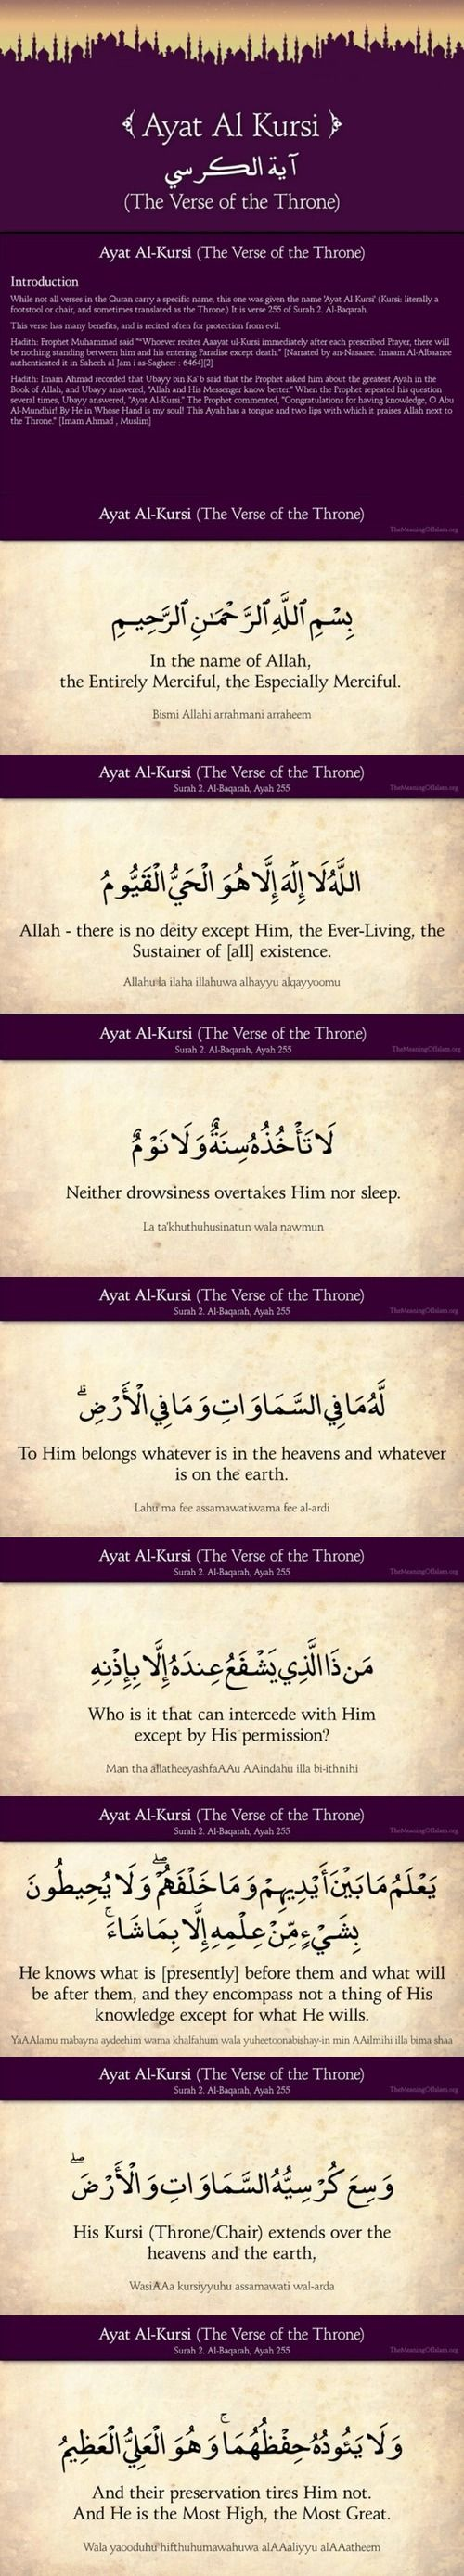 A Great Quran Verse -The Verse of The Throne Ayat Al Korsi - أية الكرسي…